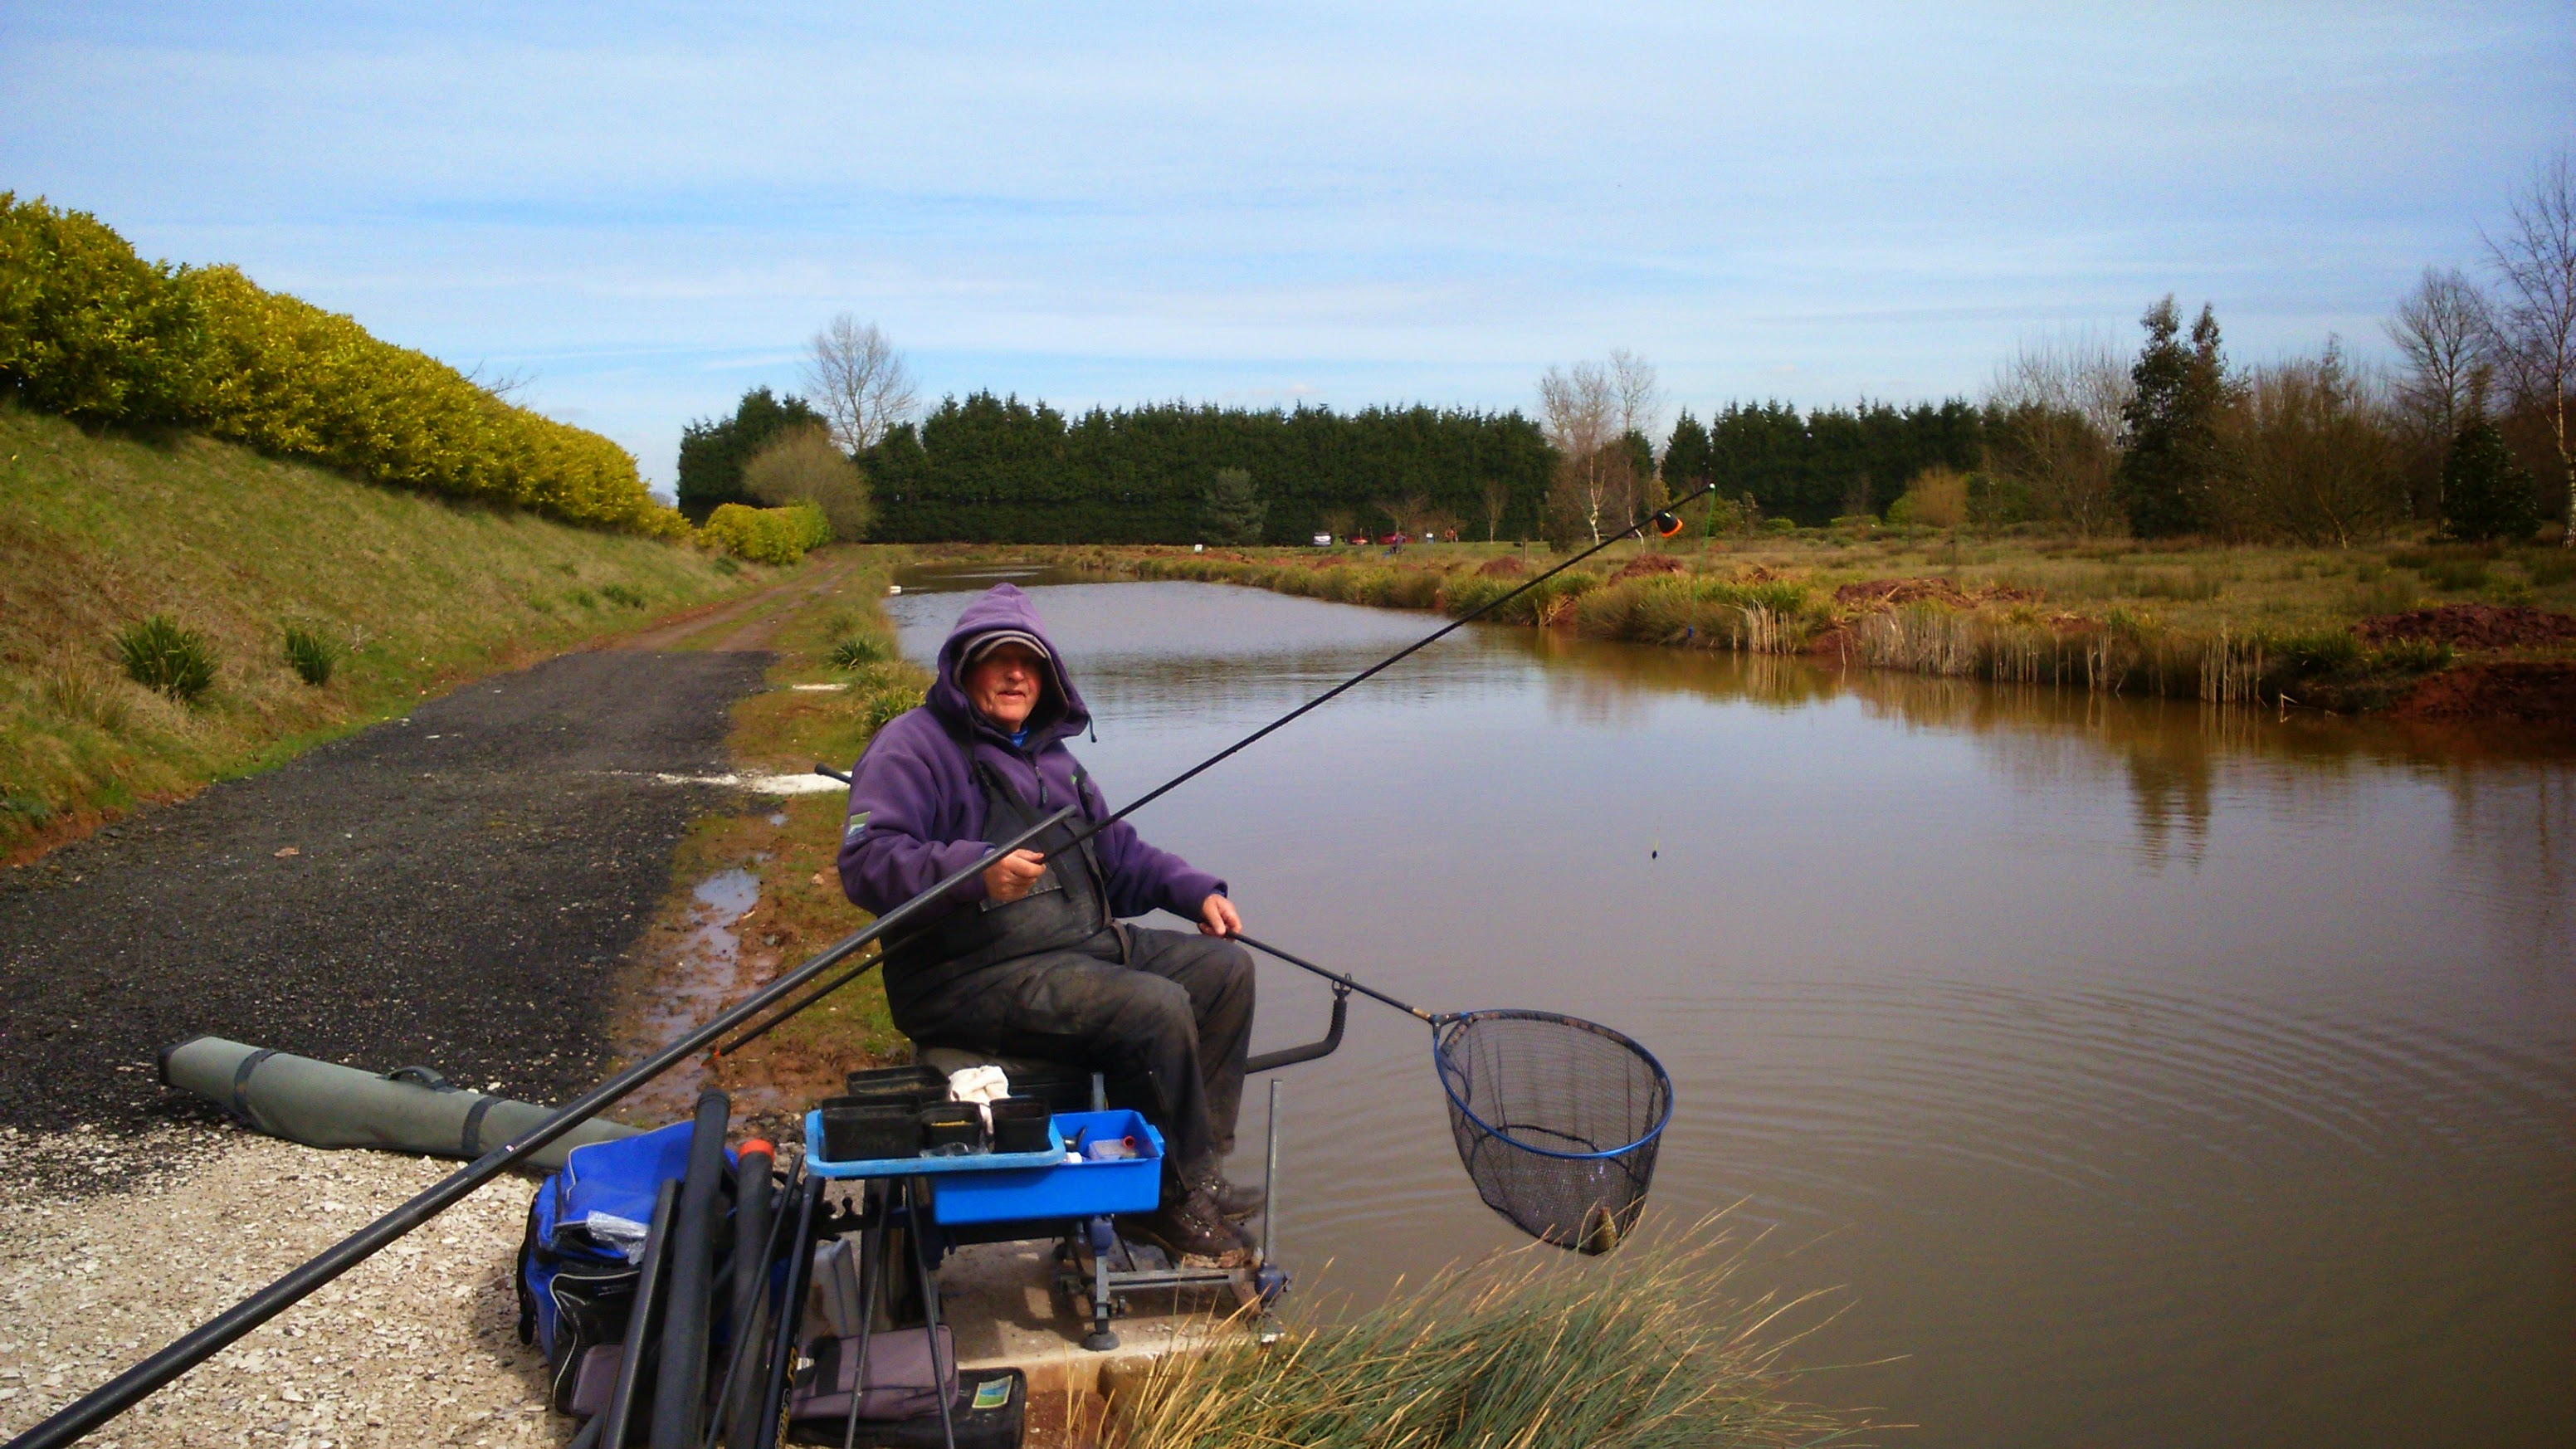 Day ticket fishing on the model, catches of up to fifty pound of carp in four hours